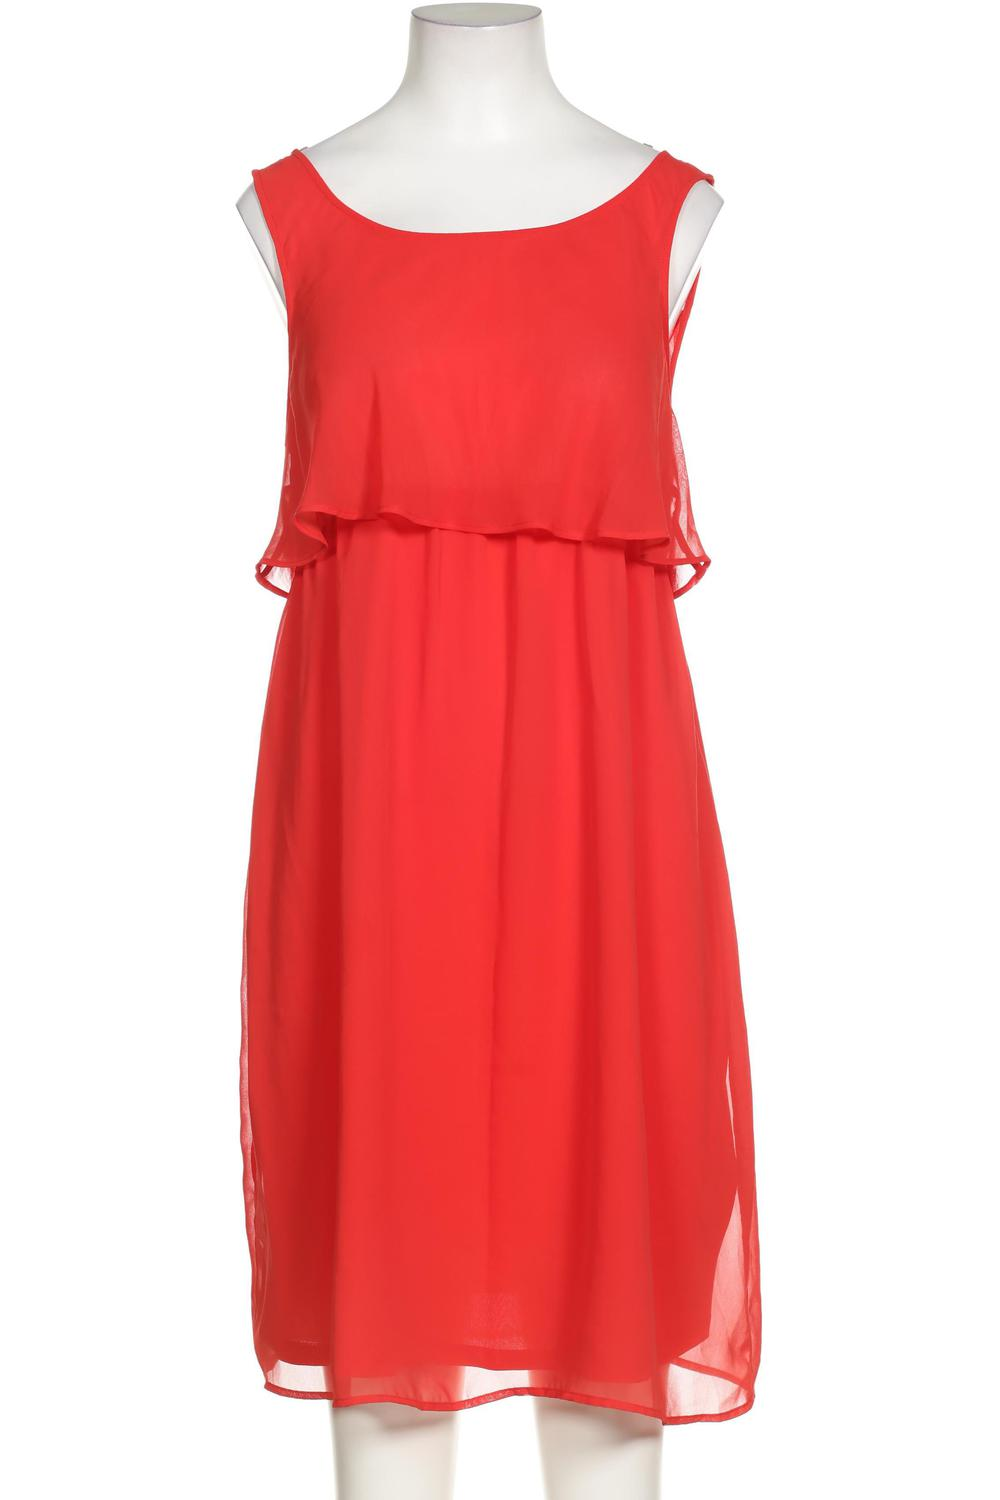 h&m mama damen kleid int s second hand kaufen | ubup